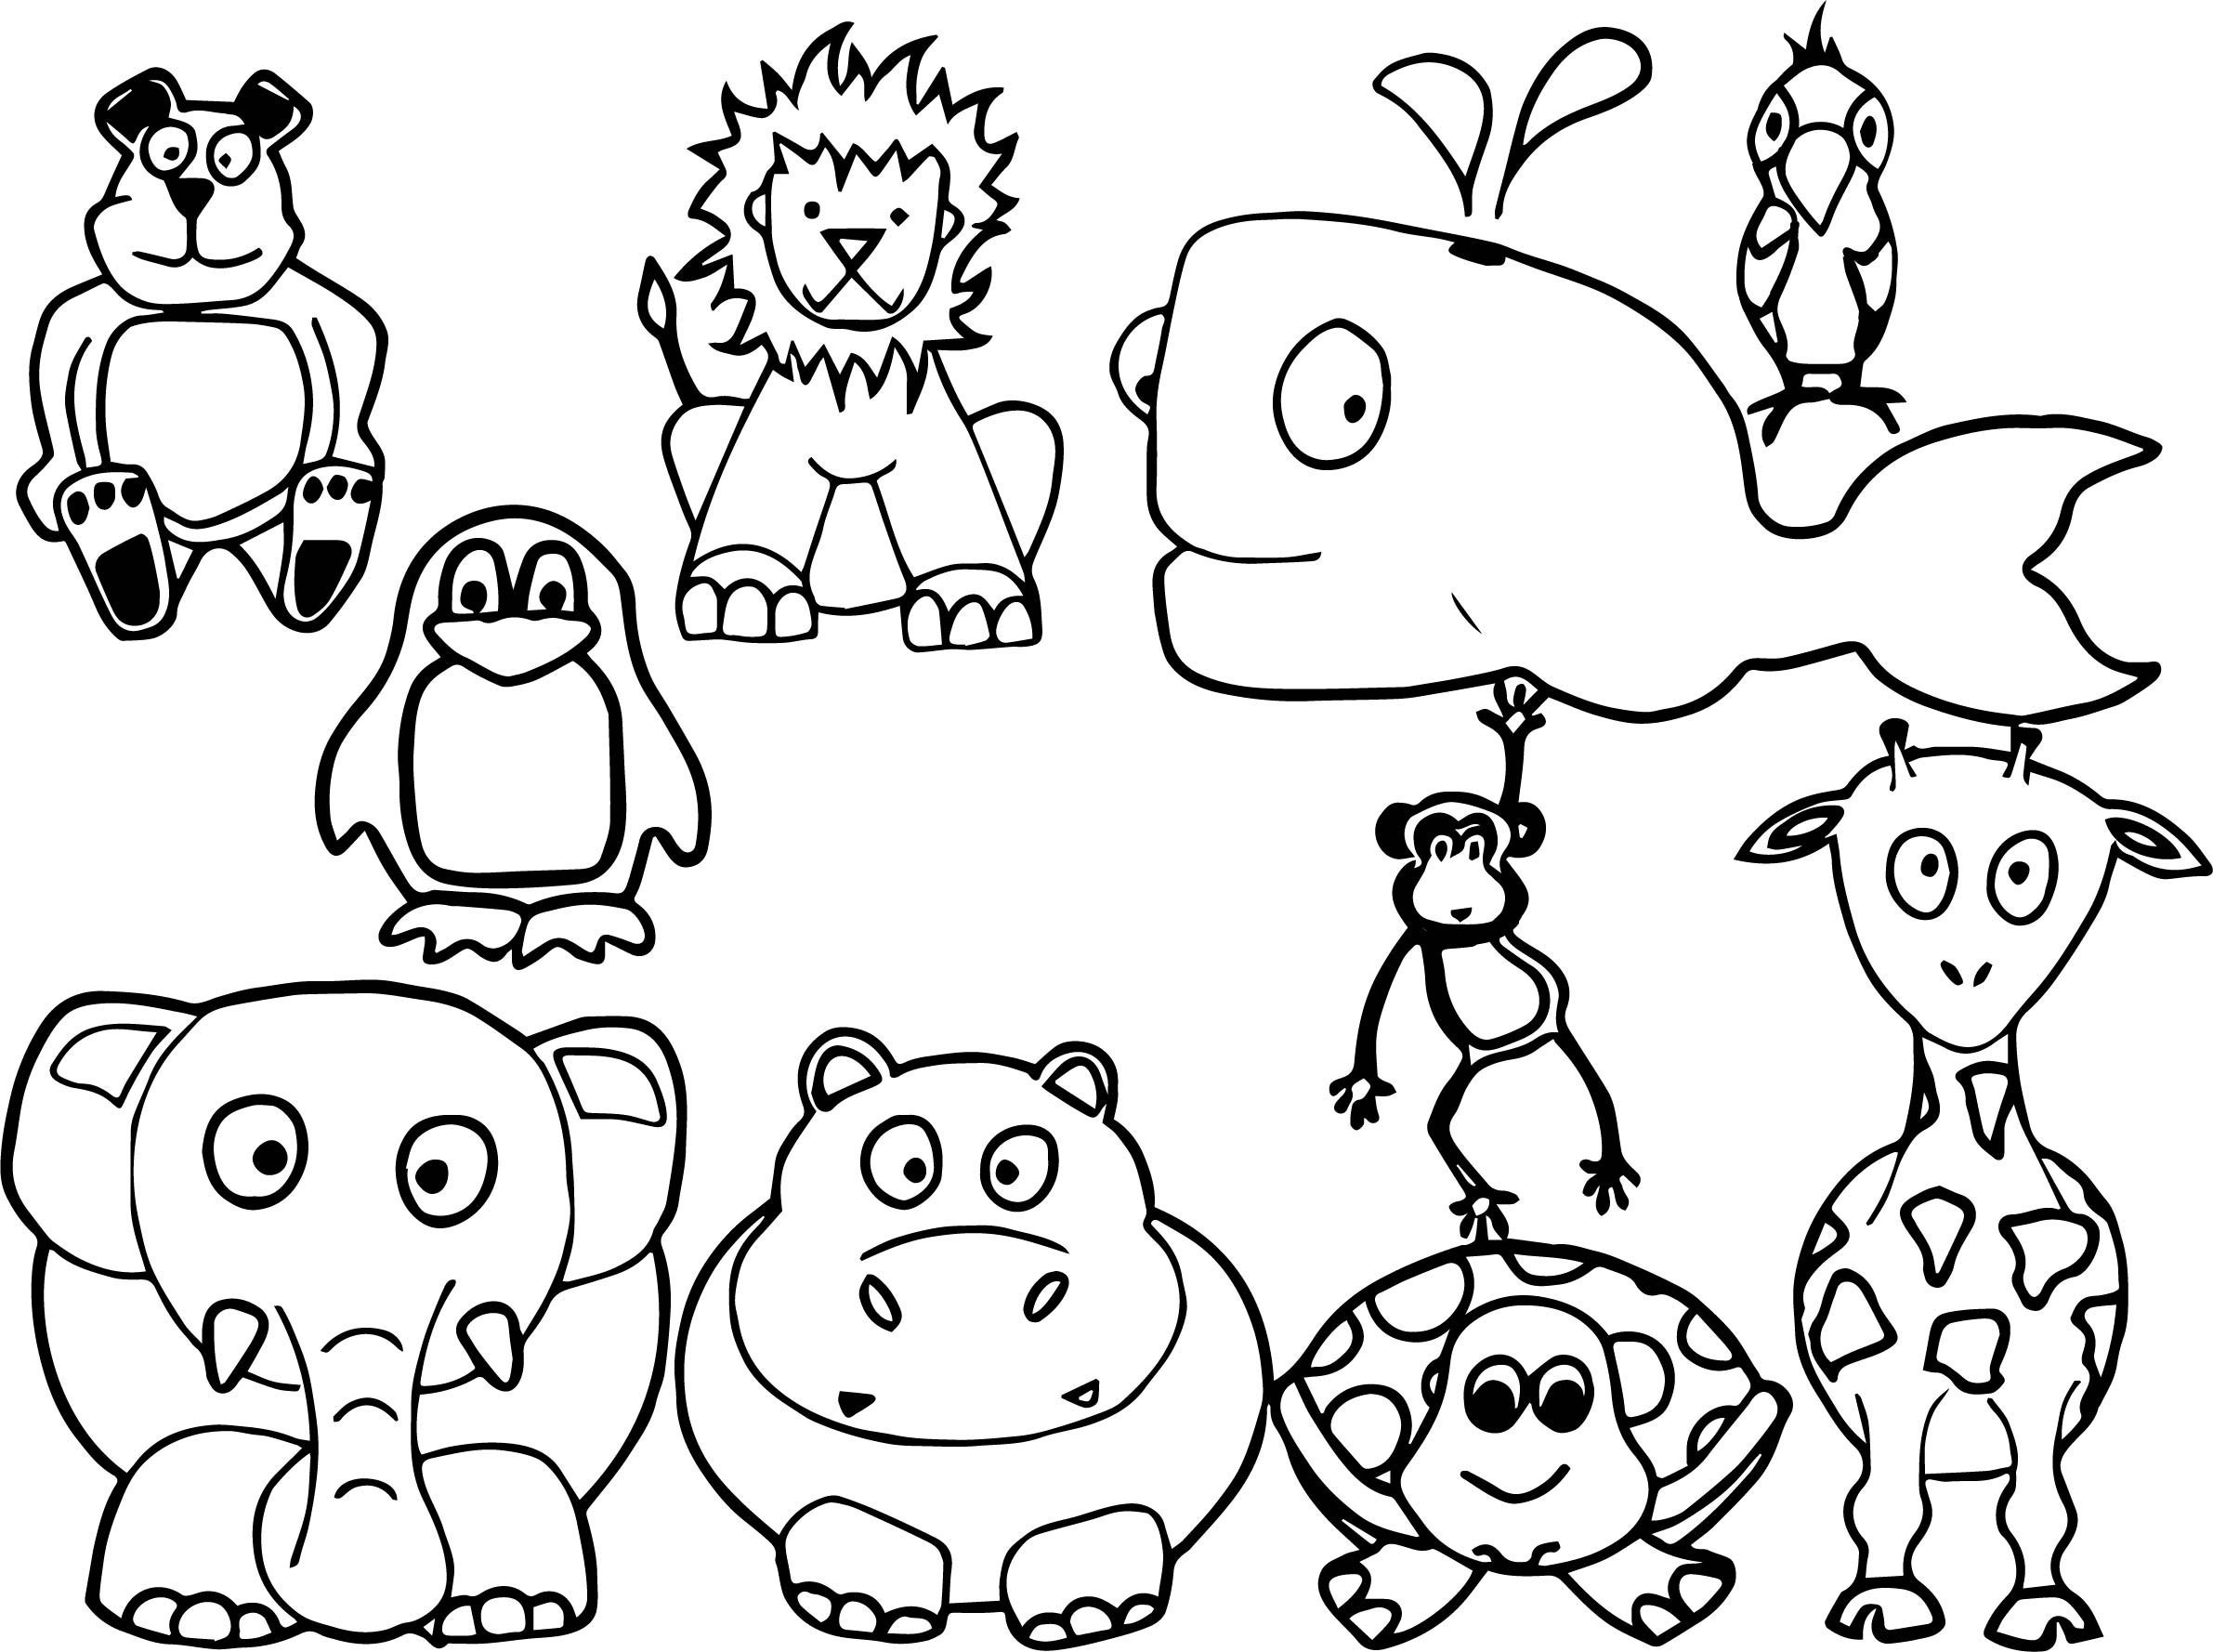 coloring pictures to color for kids 40 exclusive kids coloring pages ideas we need fun coloring kids color to pictures for